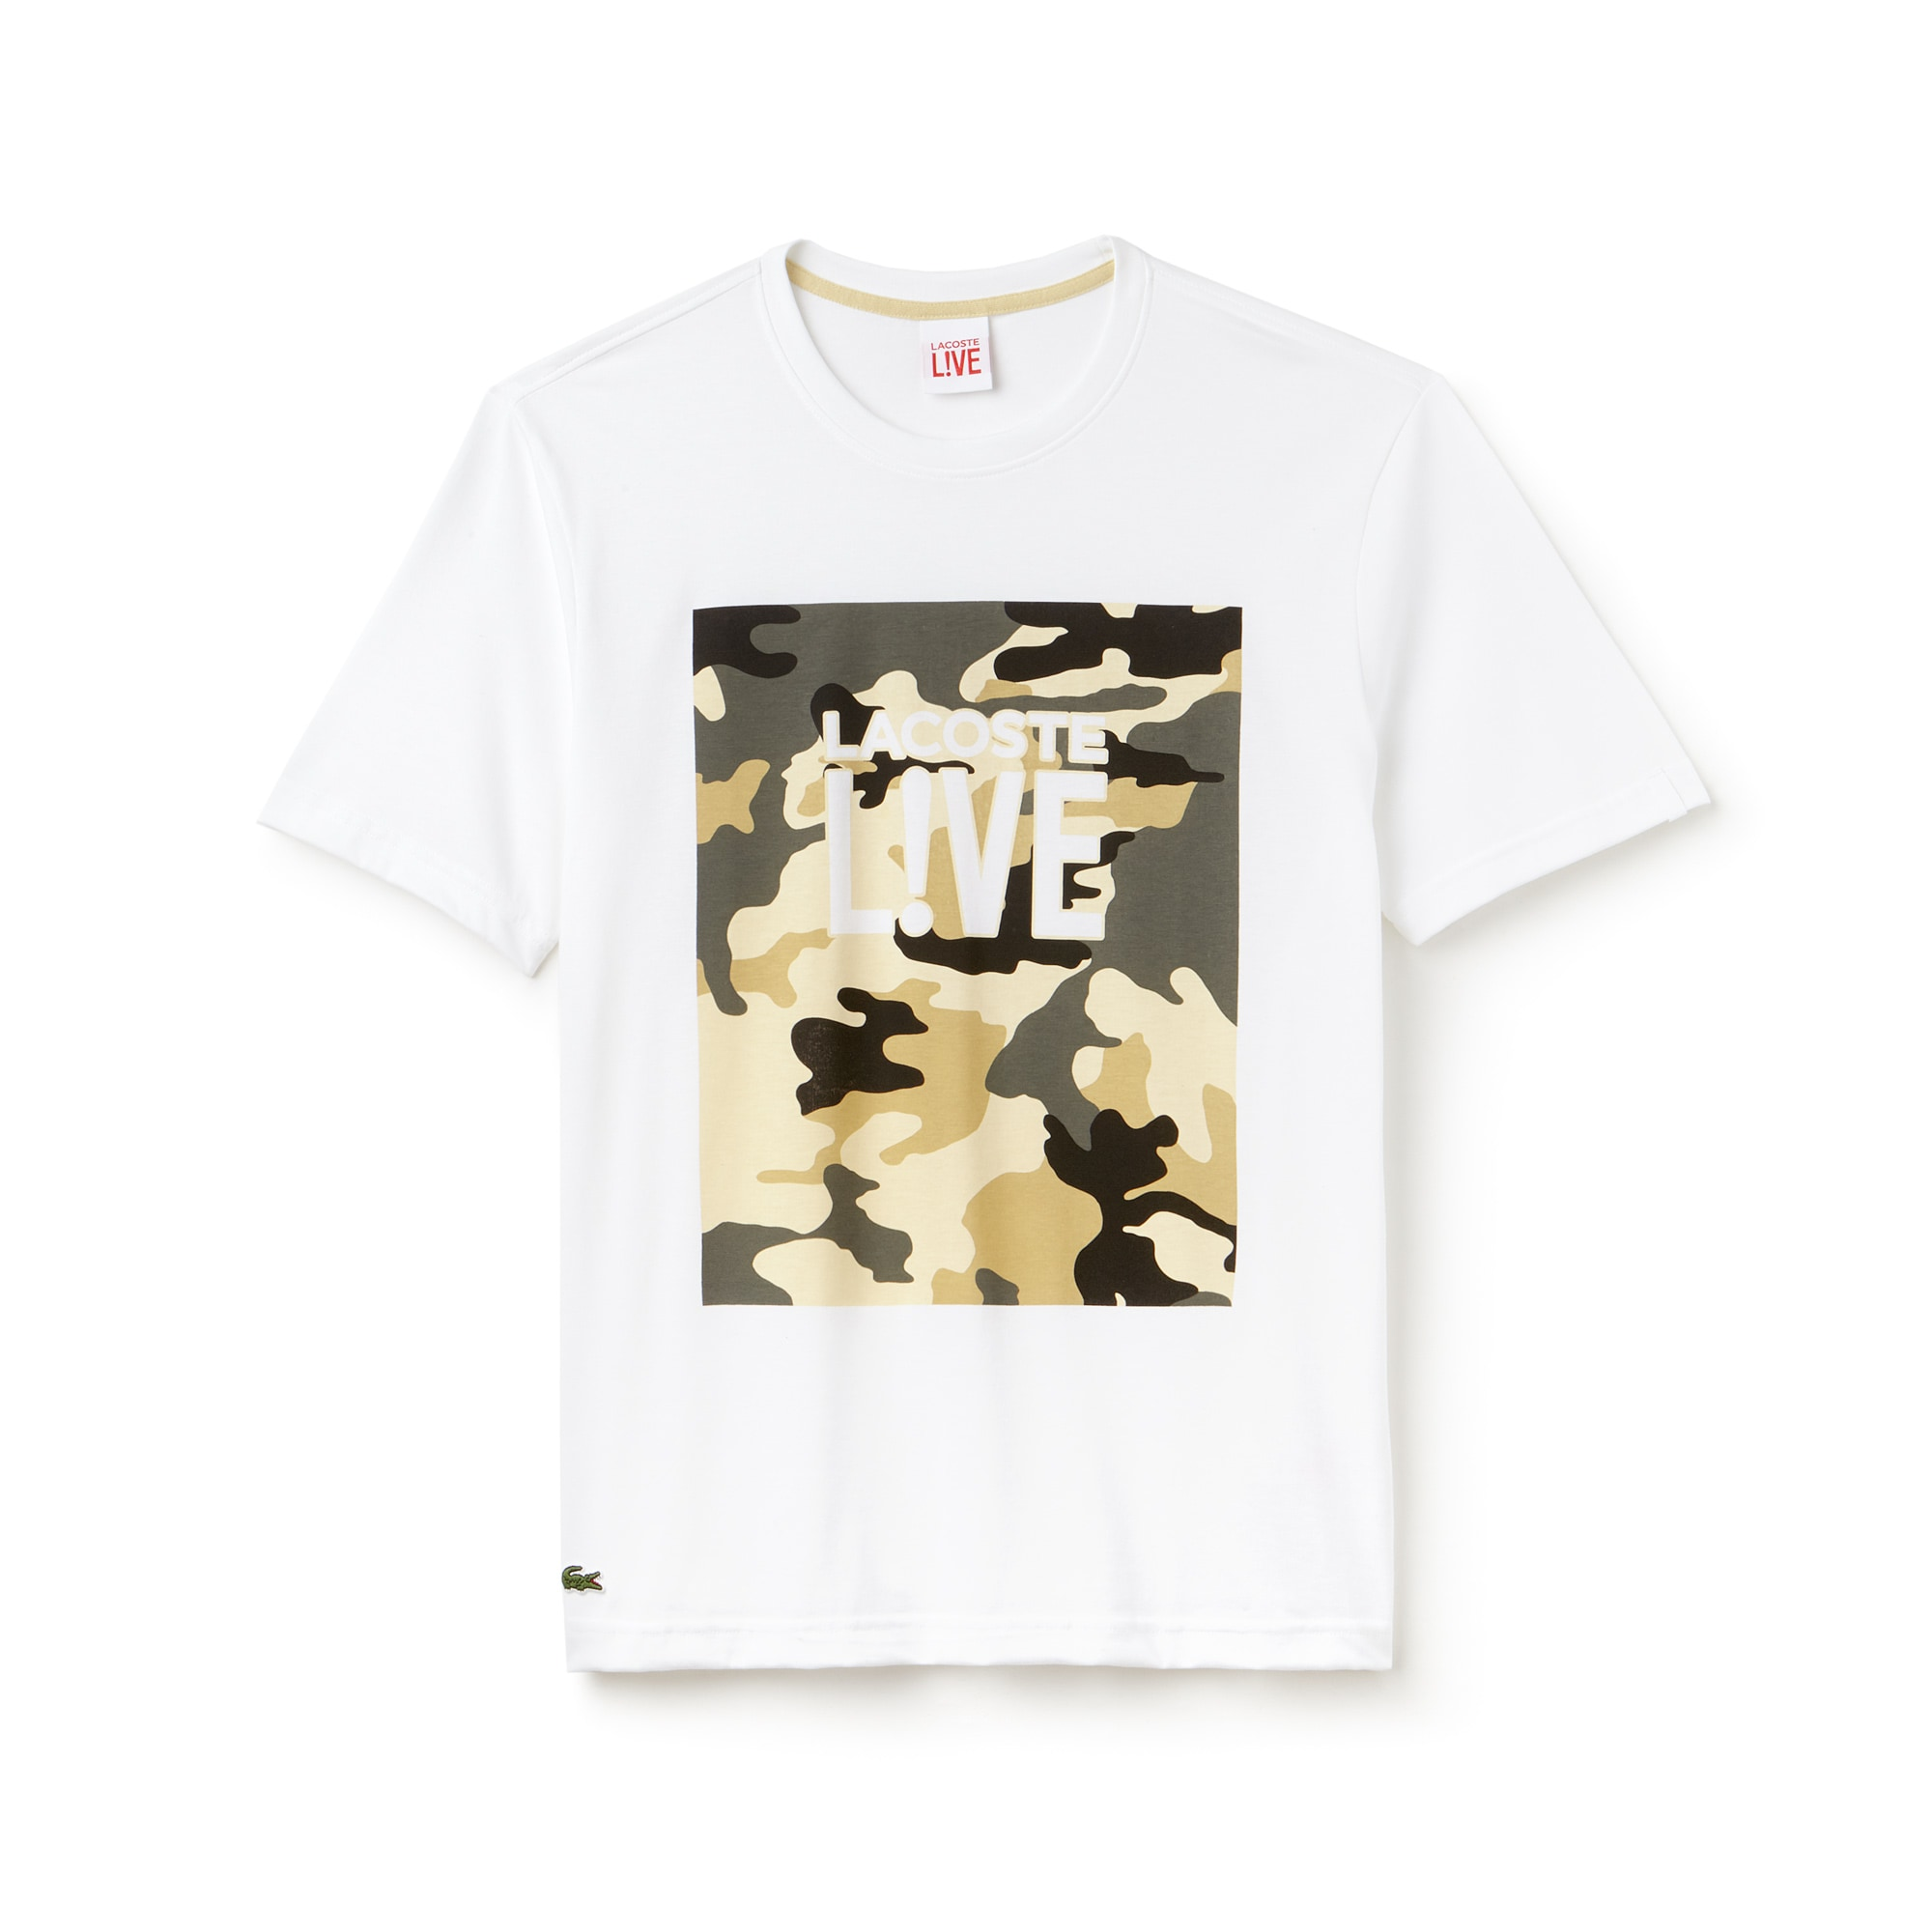 Men's LIVE Crew Neck Print Design T-Shirt